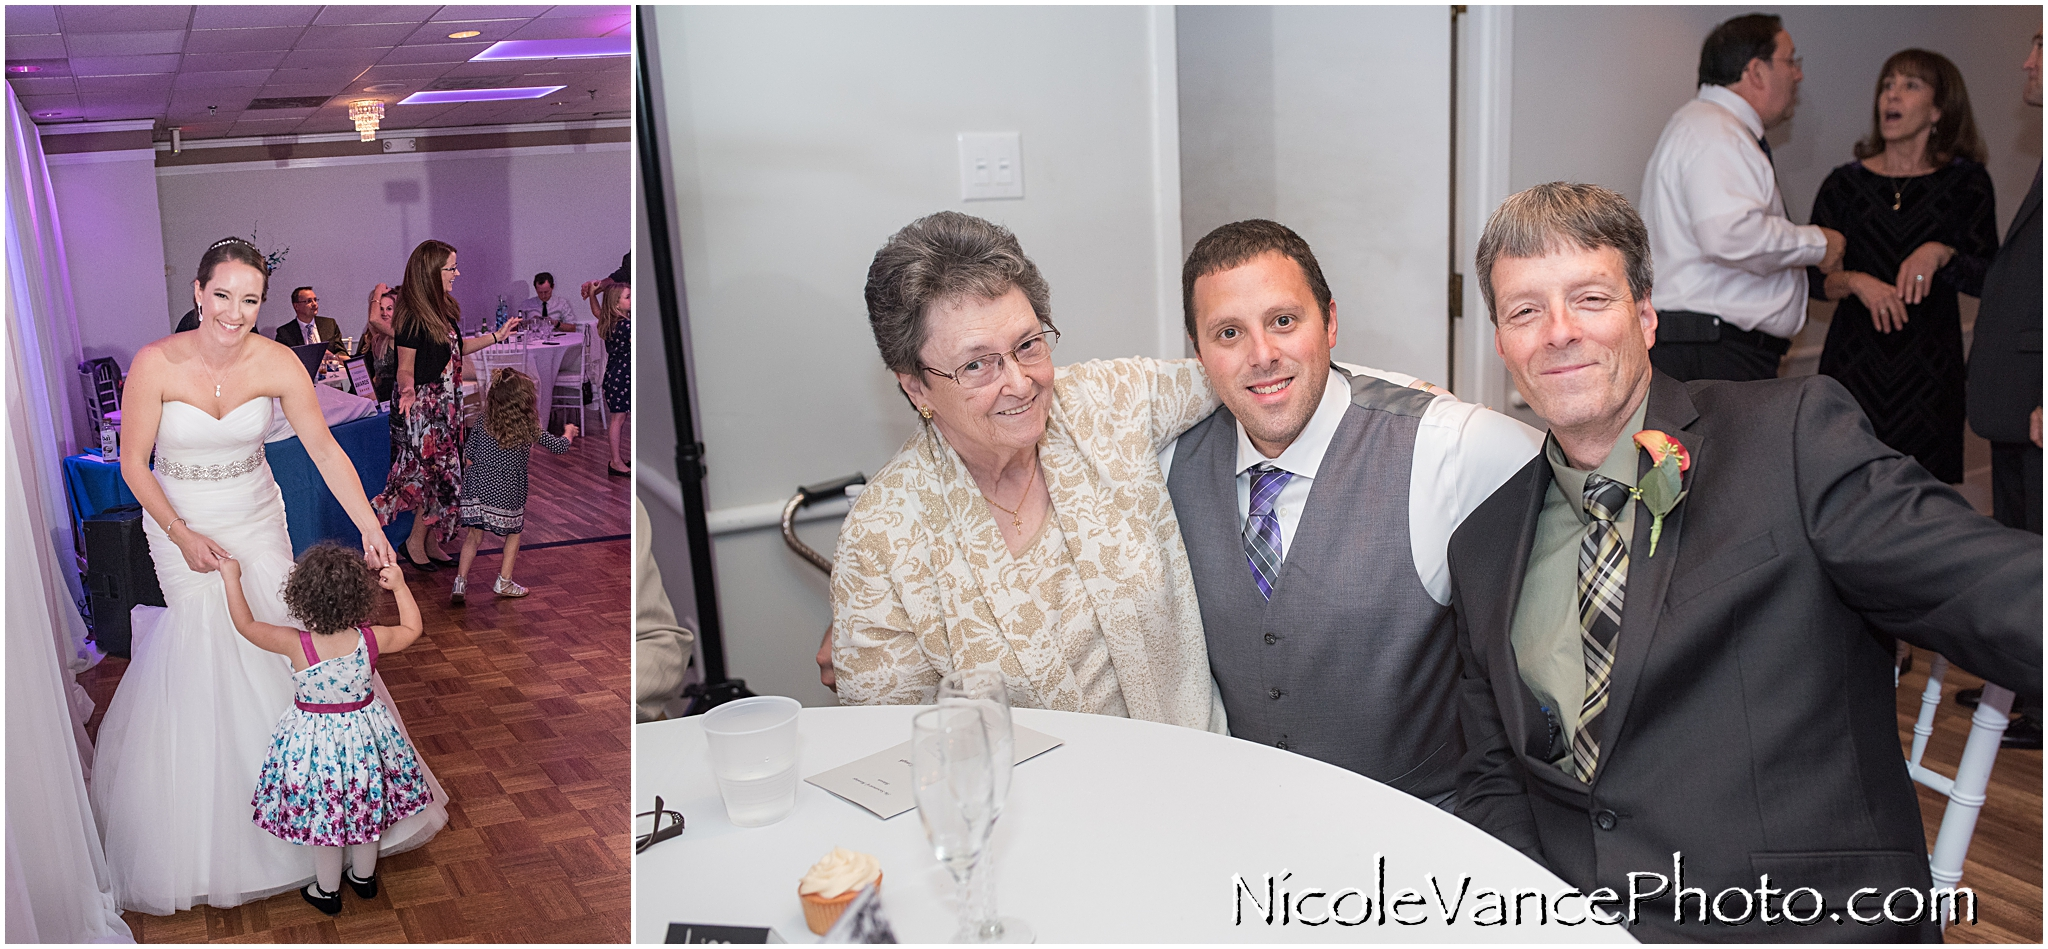 The groom and his father and grandmother at the wedding reception at The Brownstone.